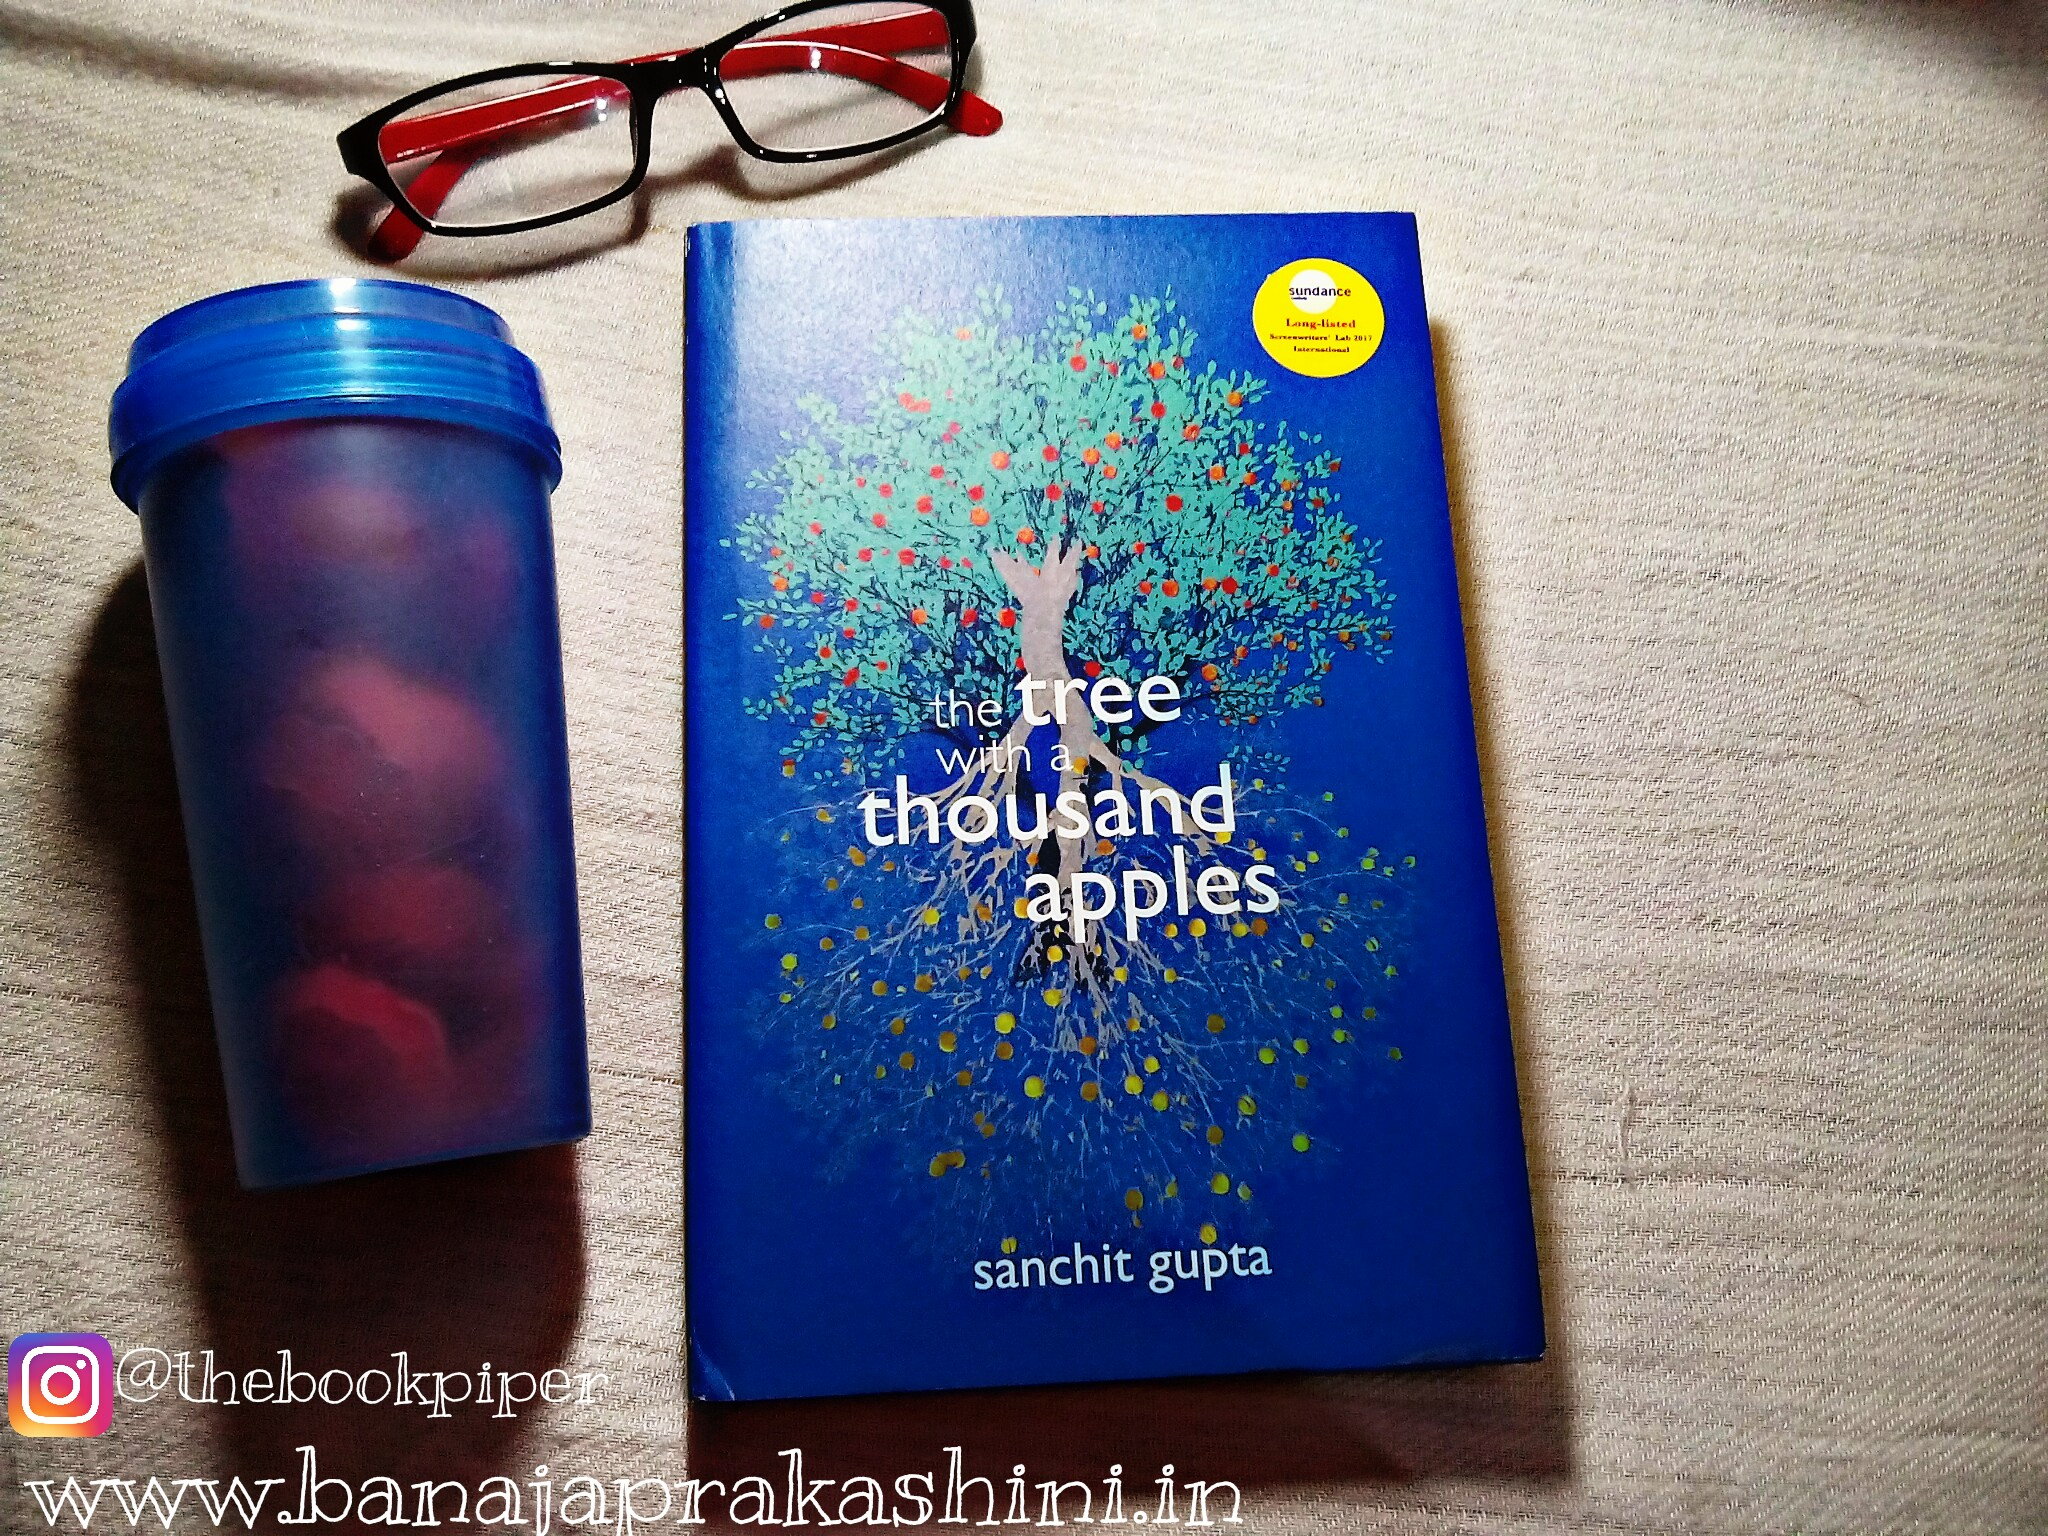 Review Pen: The Tree With A Thousand Apples by Sanchit Gupta